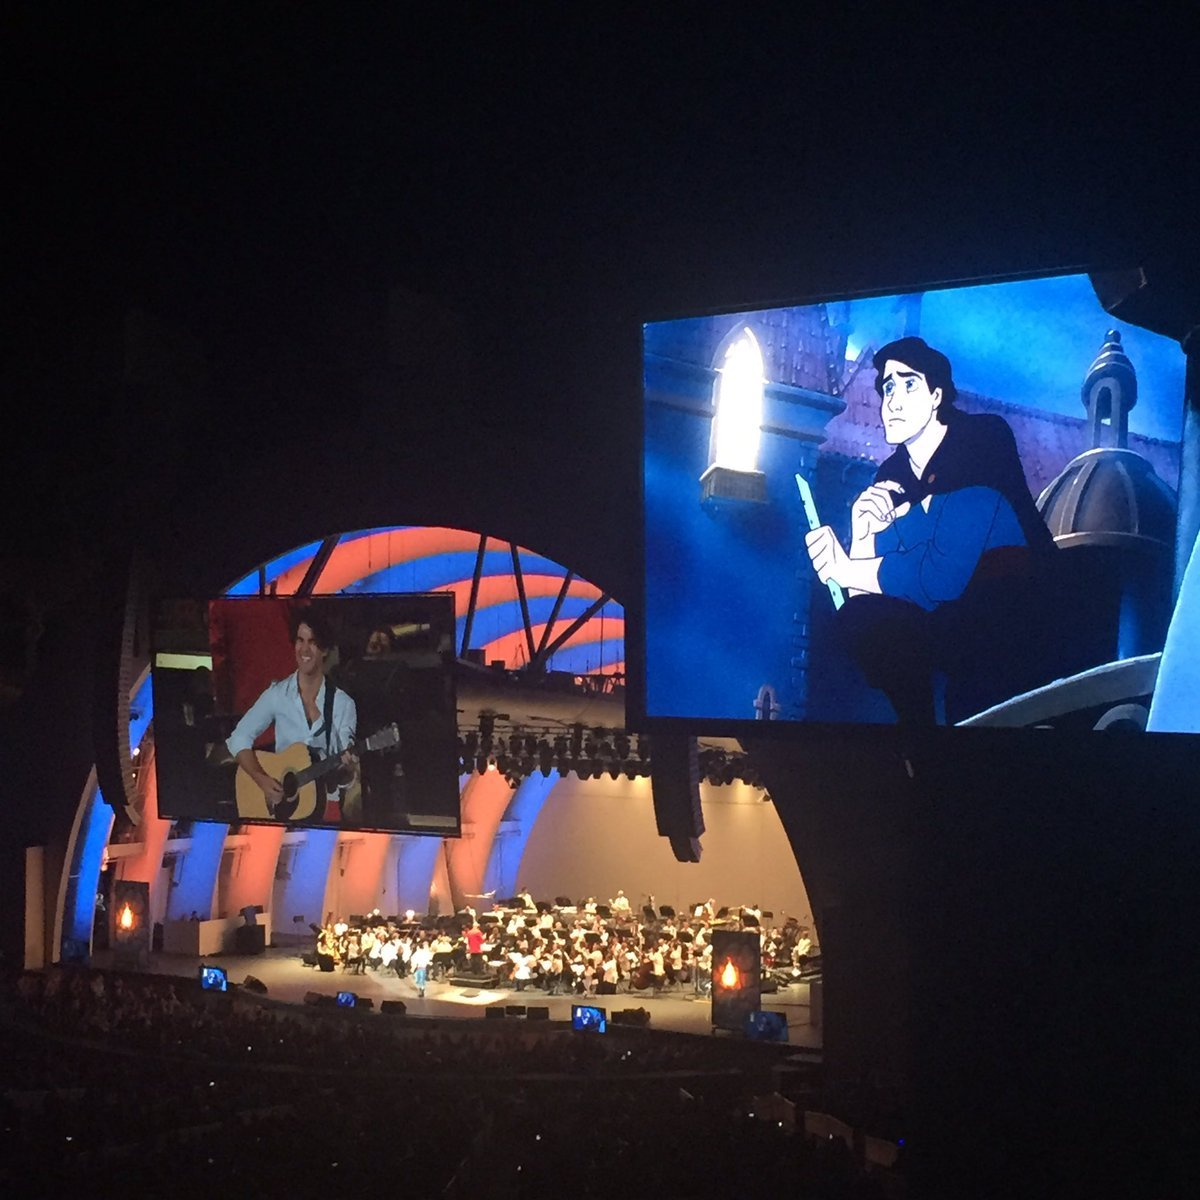 Music - The Little Mermaid at the Hollywood Bowl on June 3, 4, and 6, 2016 - Page 2 Tumblr_o8afx5cpp01uetdyxo4_1280